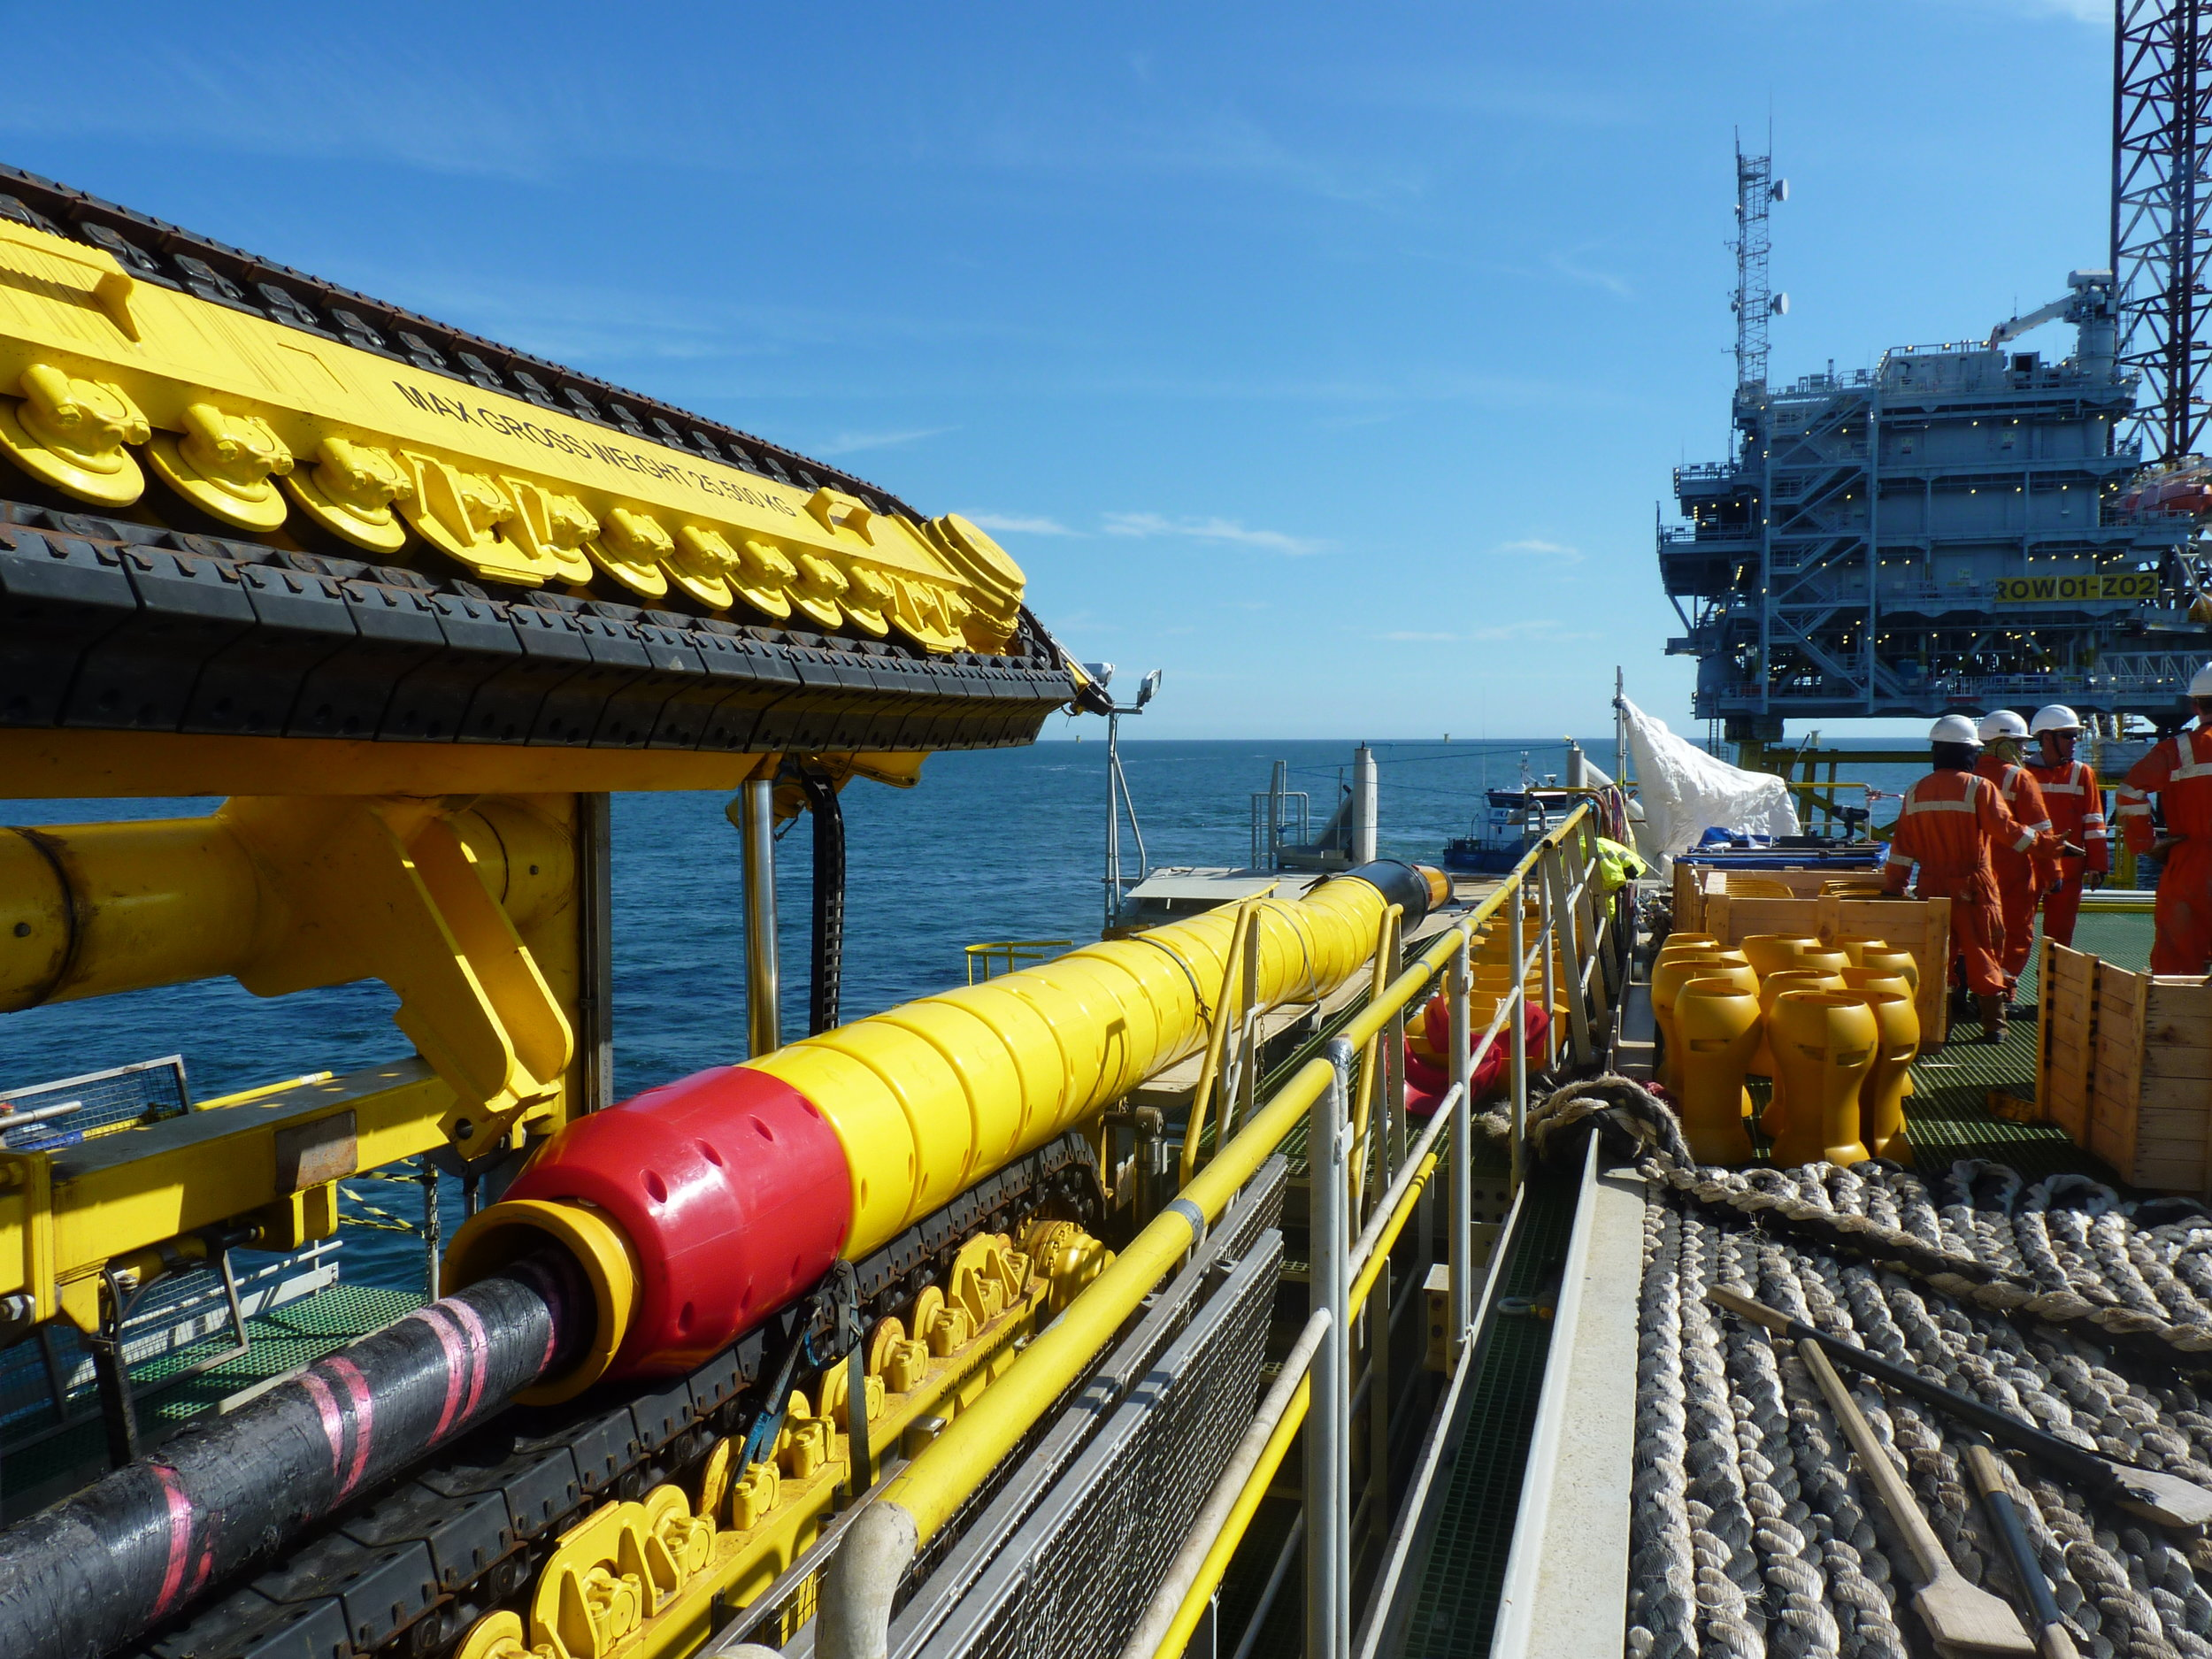 Photo caption: Tekmar Cable Protection System on the back of a Jan De Nul Group vessel installing an offshore wind project.  High resolution image can be downloaded here.